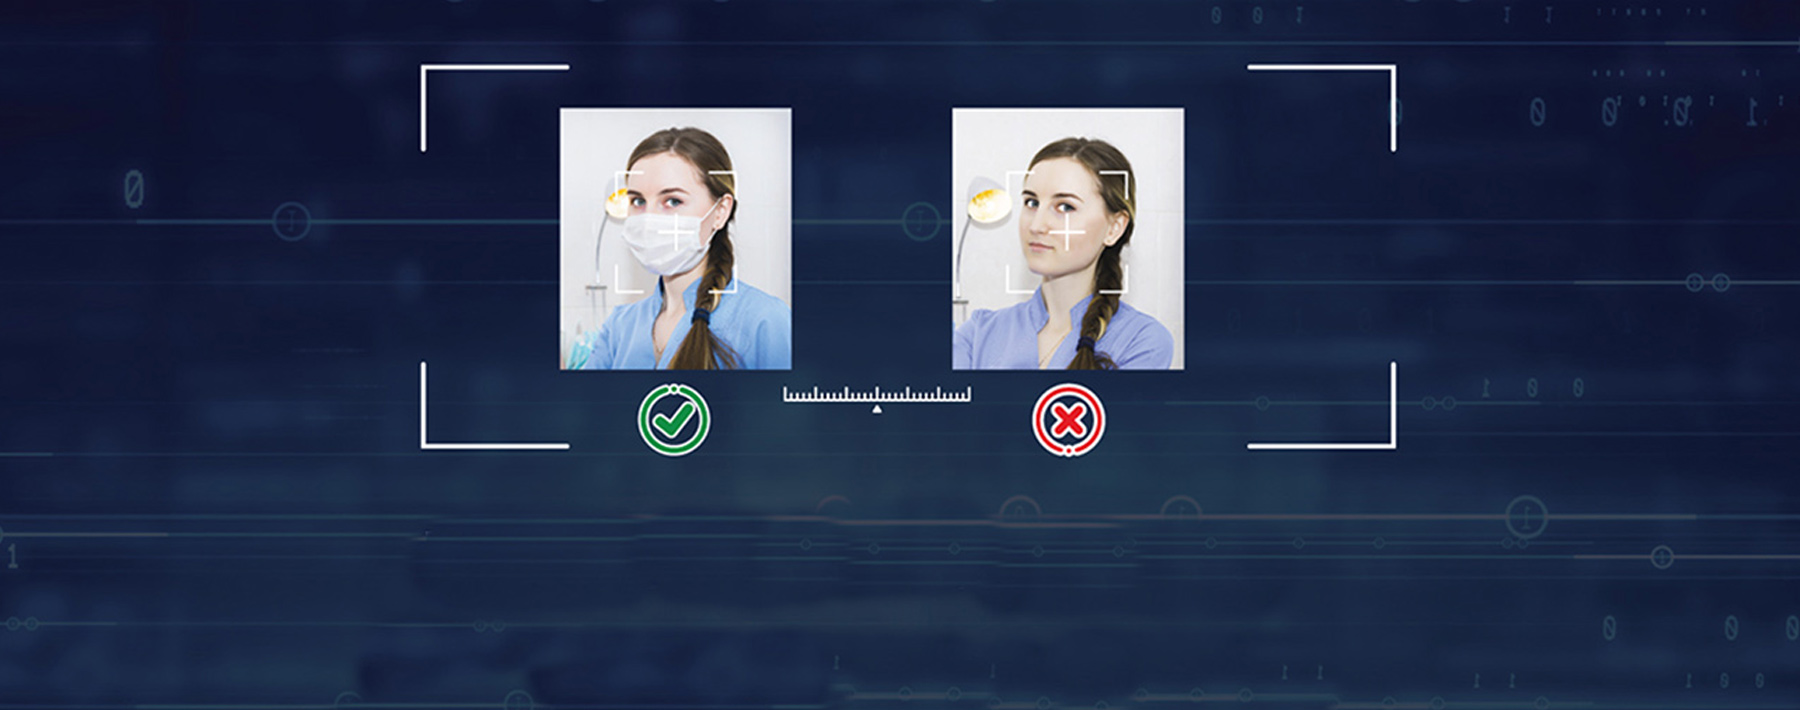 Face Mask Detection Solutions